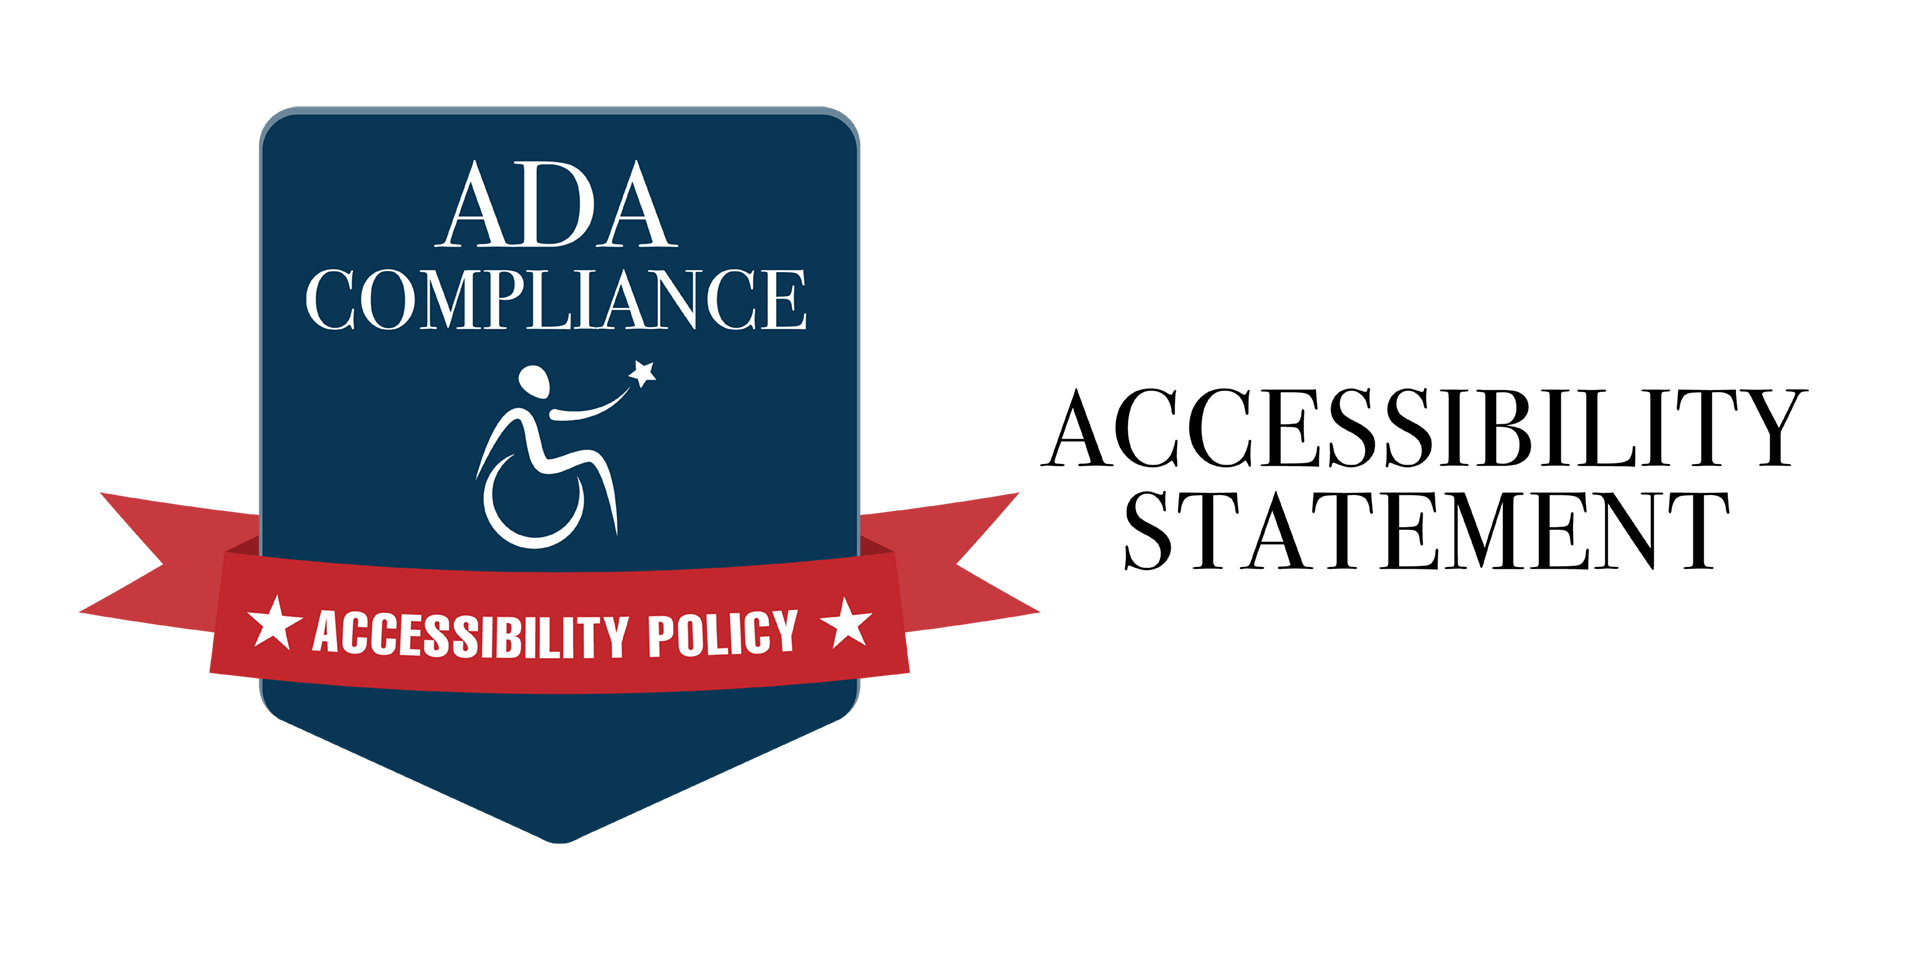 ADA Compliance Accessibility Policy Accesibility Statement